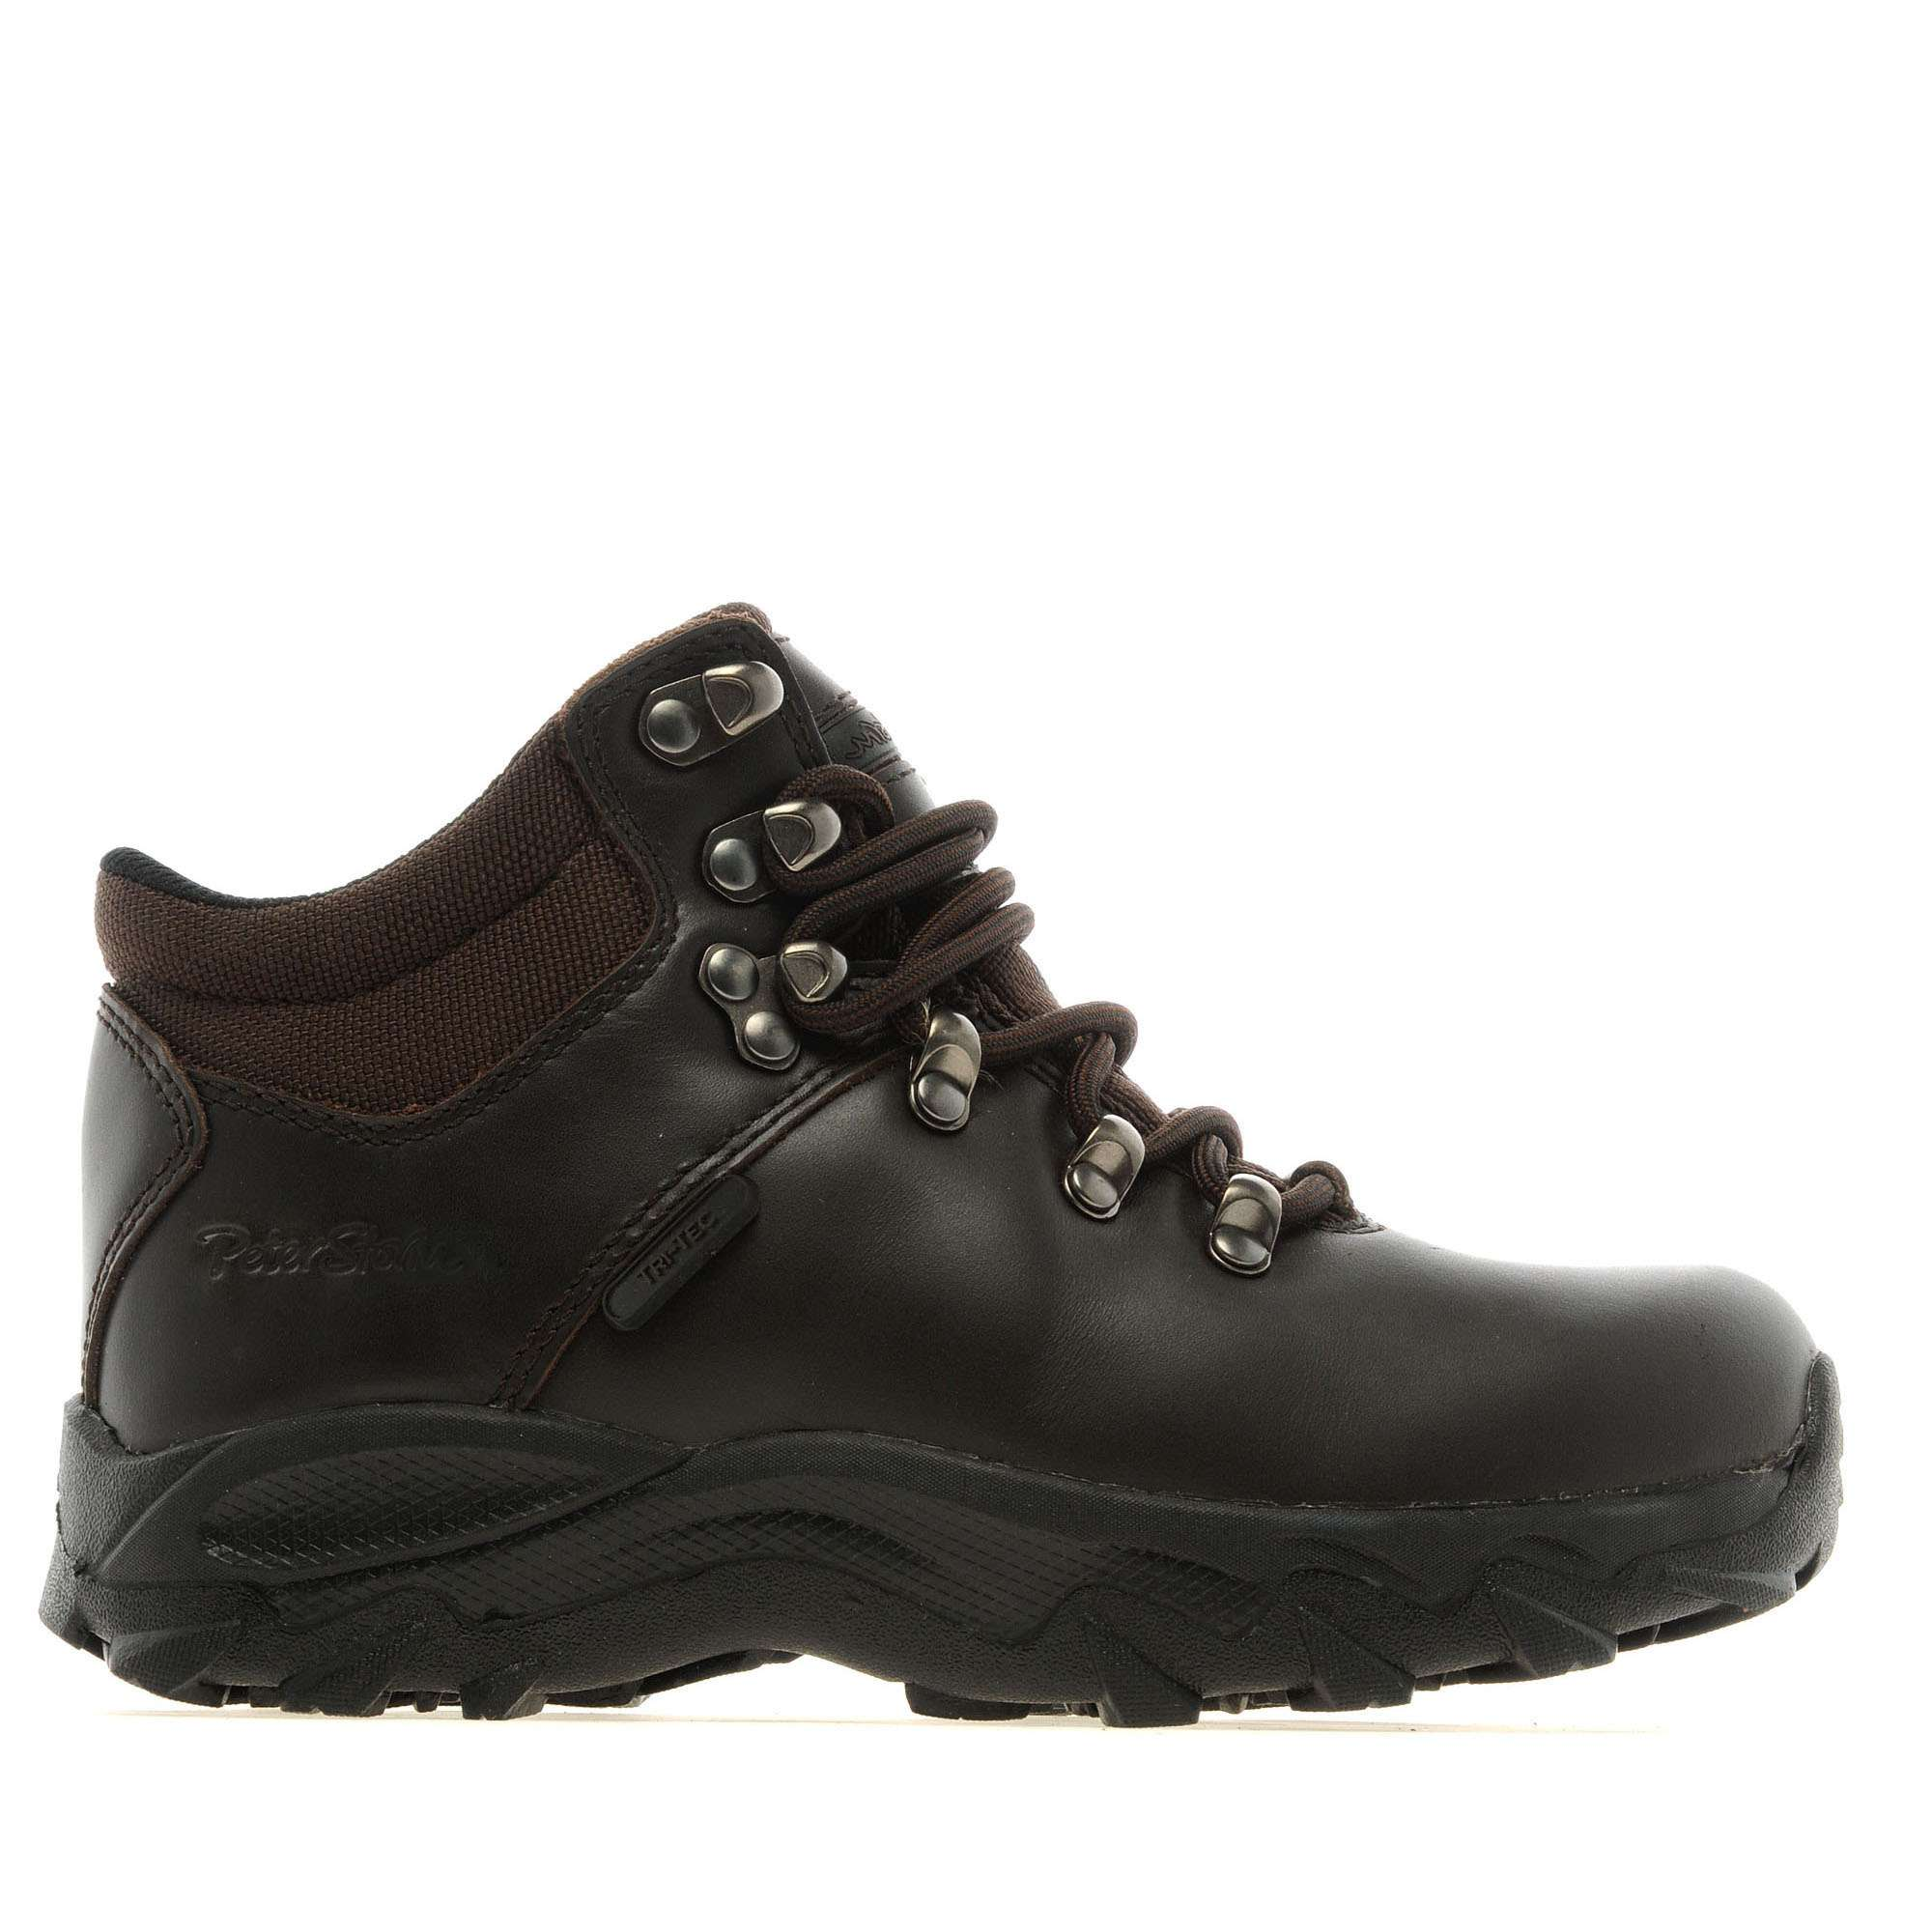 PETER STORM Children's Chiltern Waterproof Leather Walking Boots